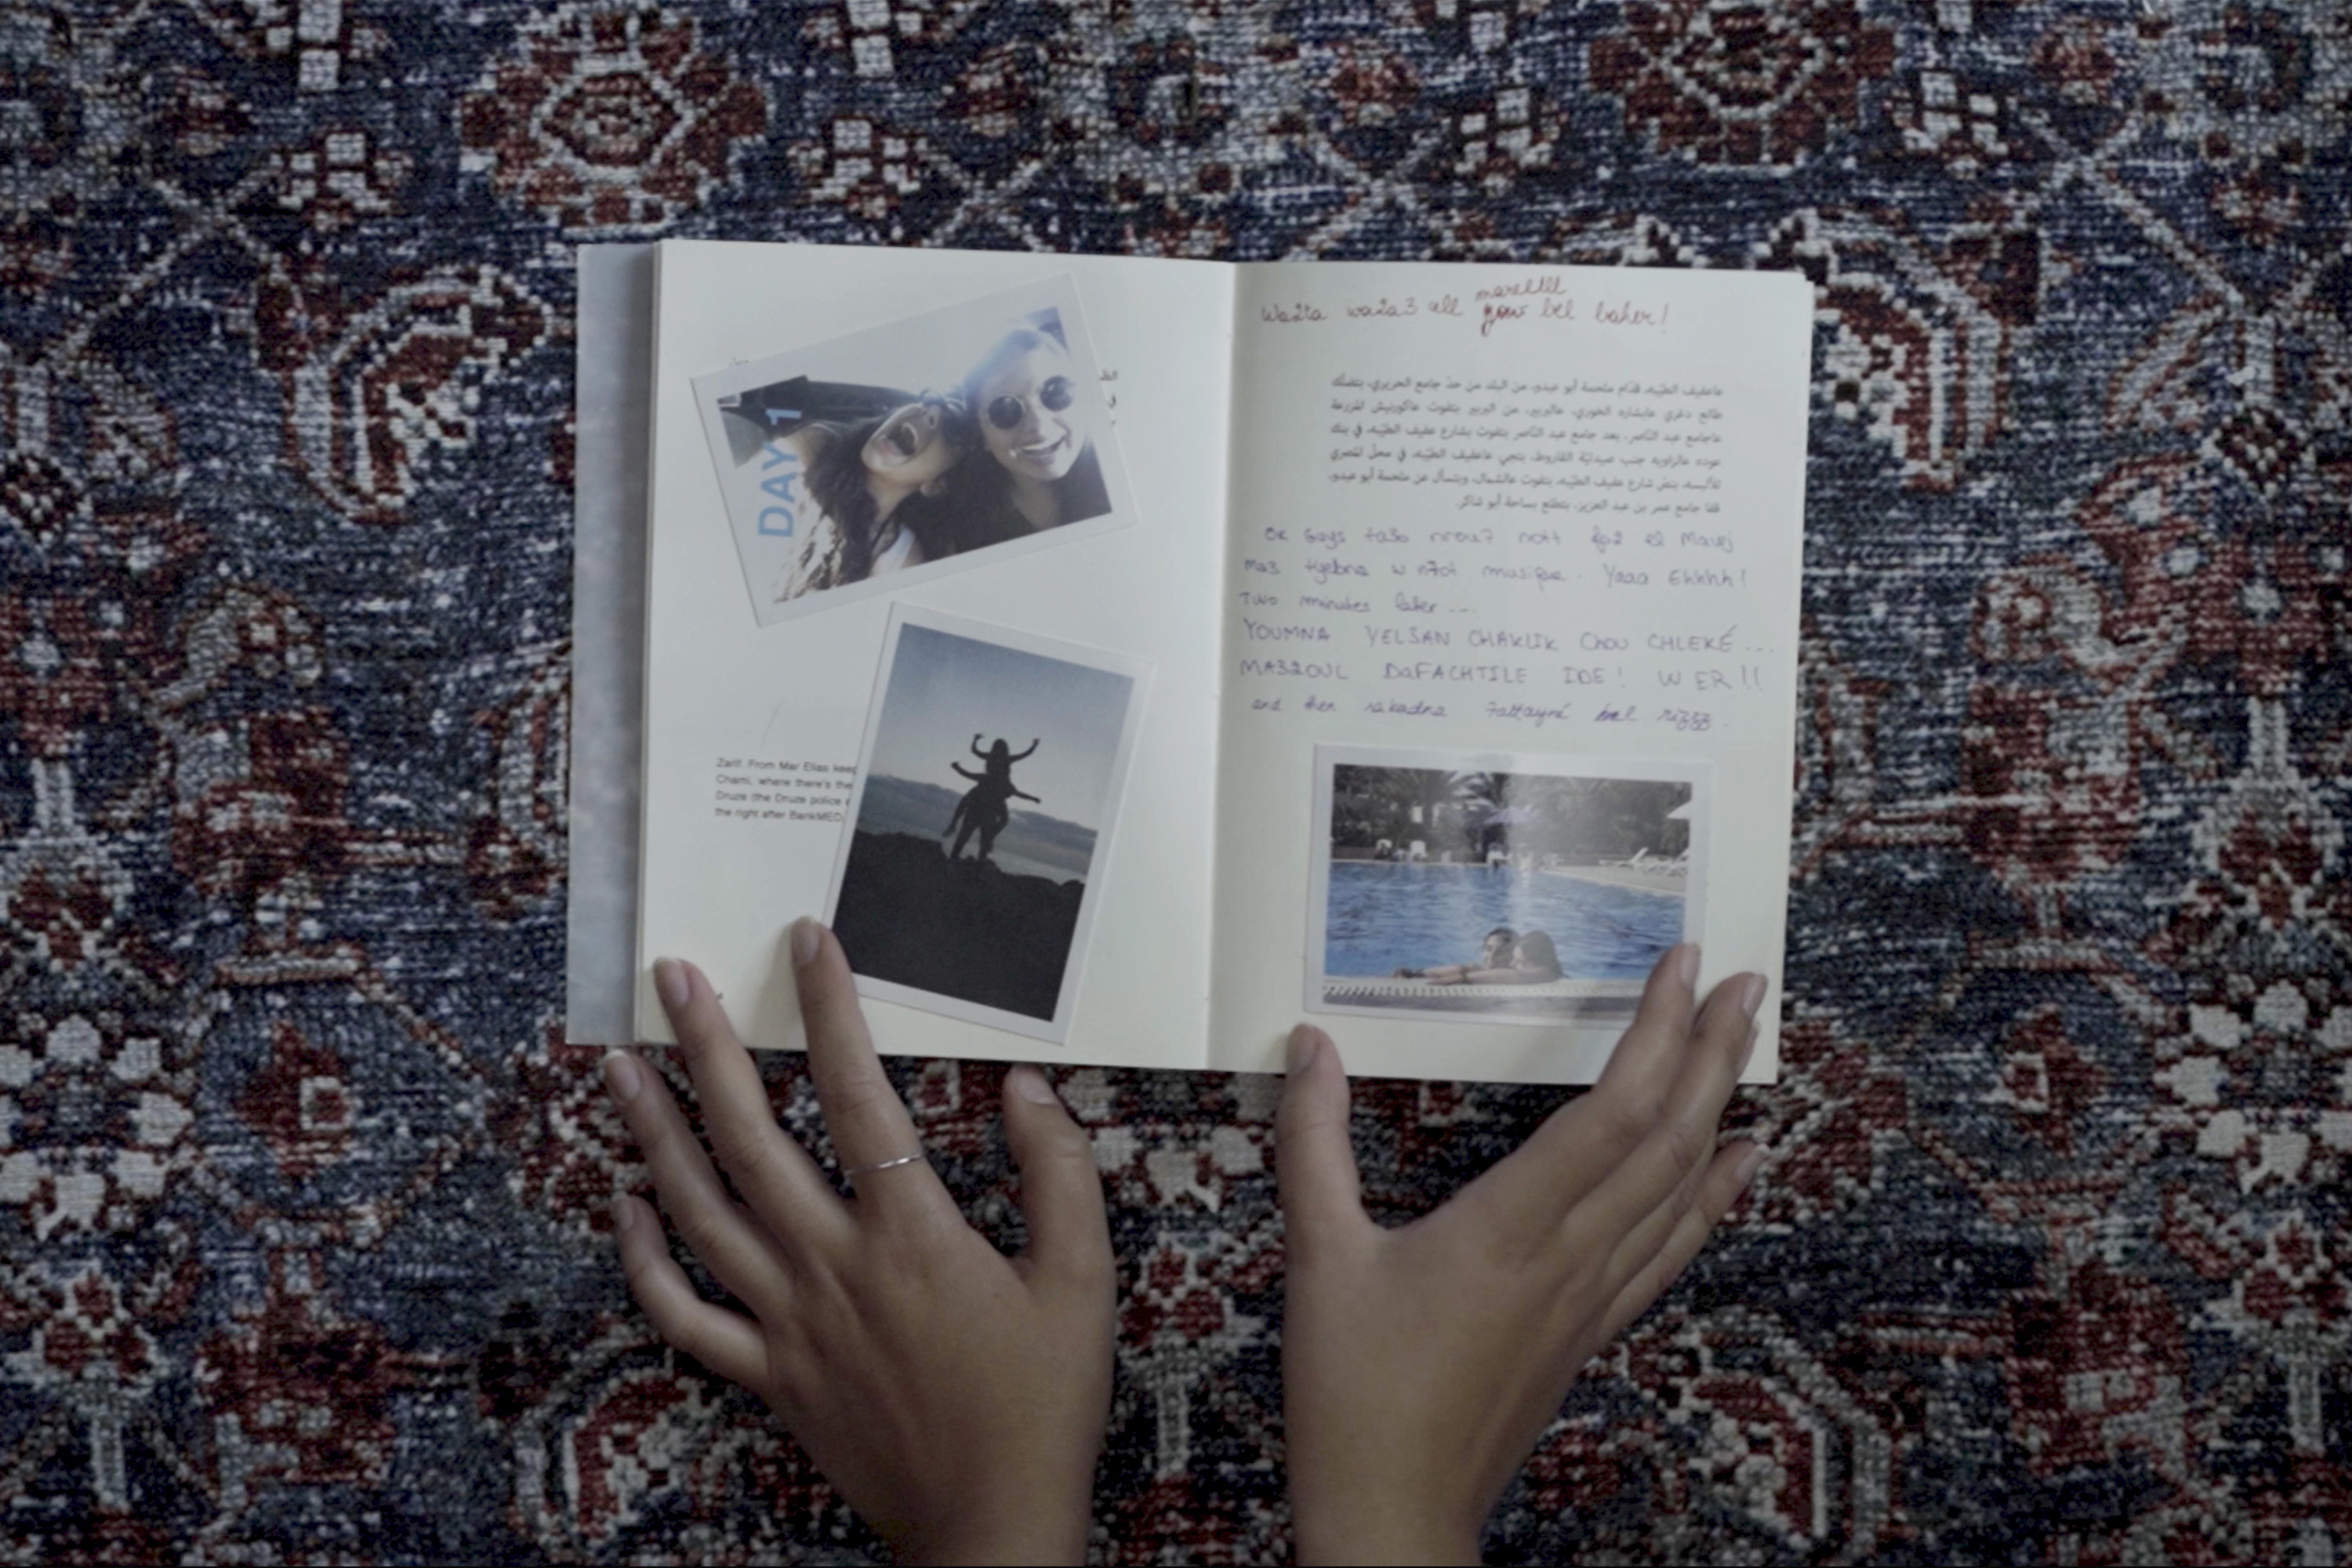 After the Explosion: The importance of filmmaking and memories about Maria Raad's journey from Beirut to Syracuse.